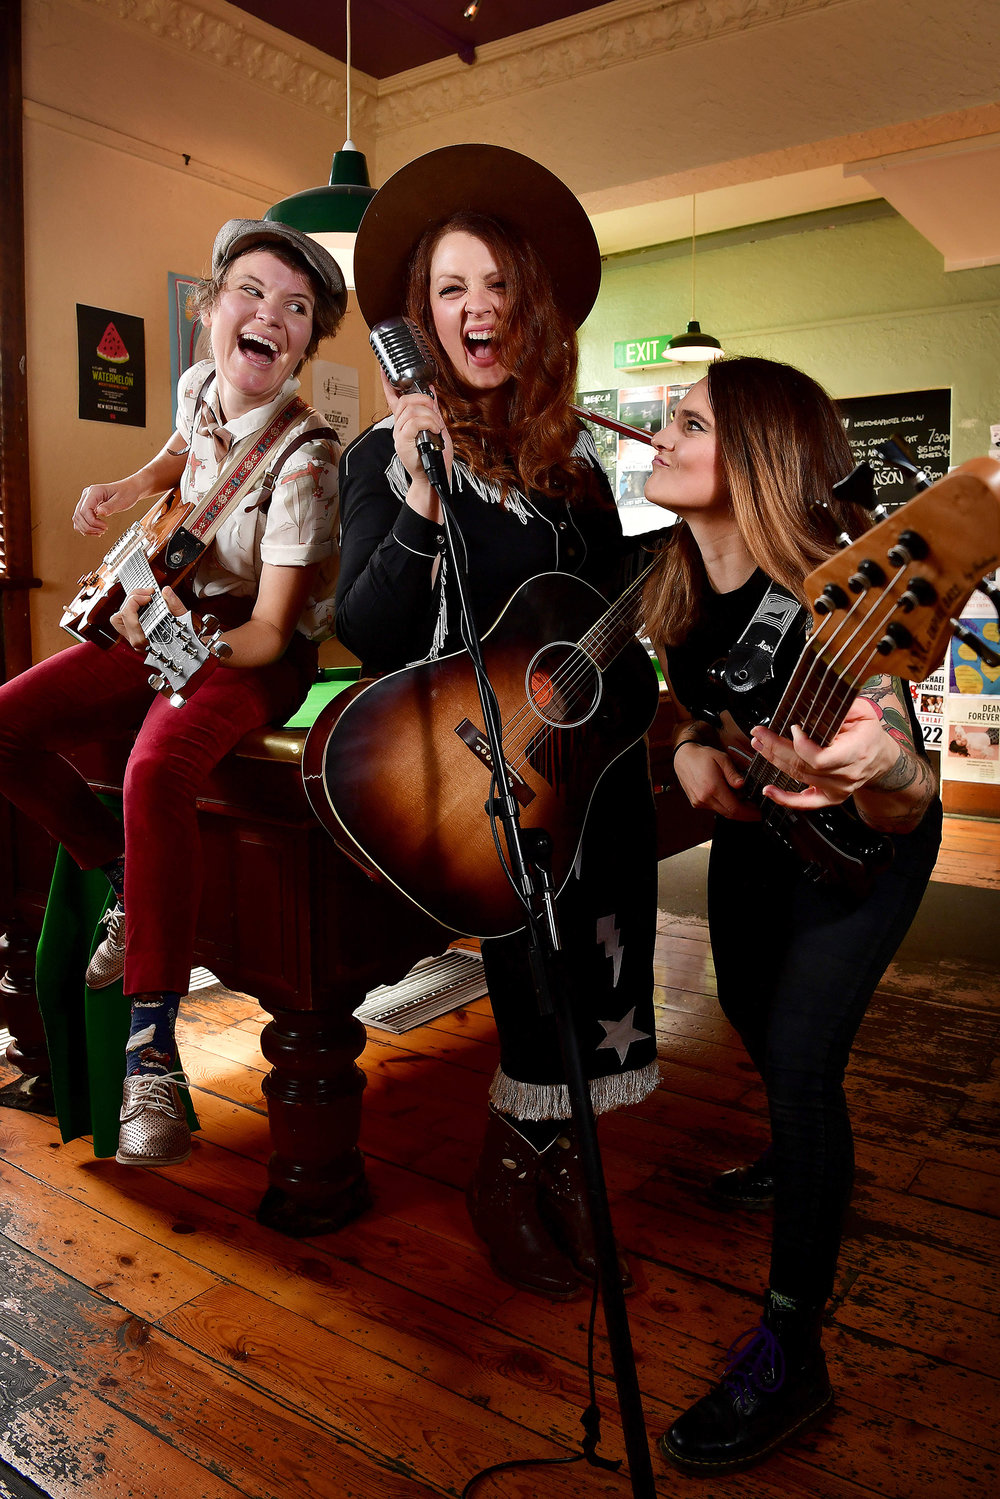 CHP_Export_174512367_Guitarists-singers-song writers Kelly Menhennett  Hana Brenecki & Annie Siegman.jpg